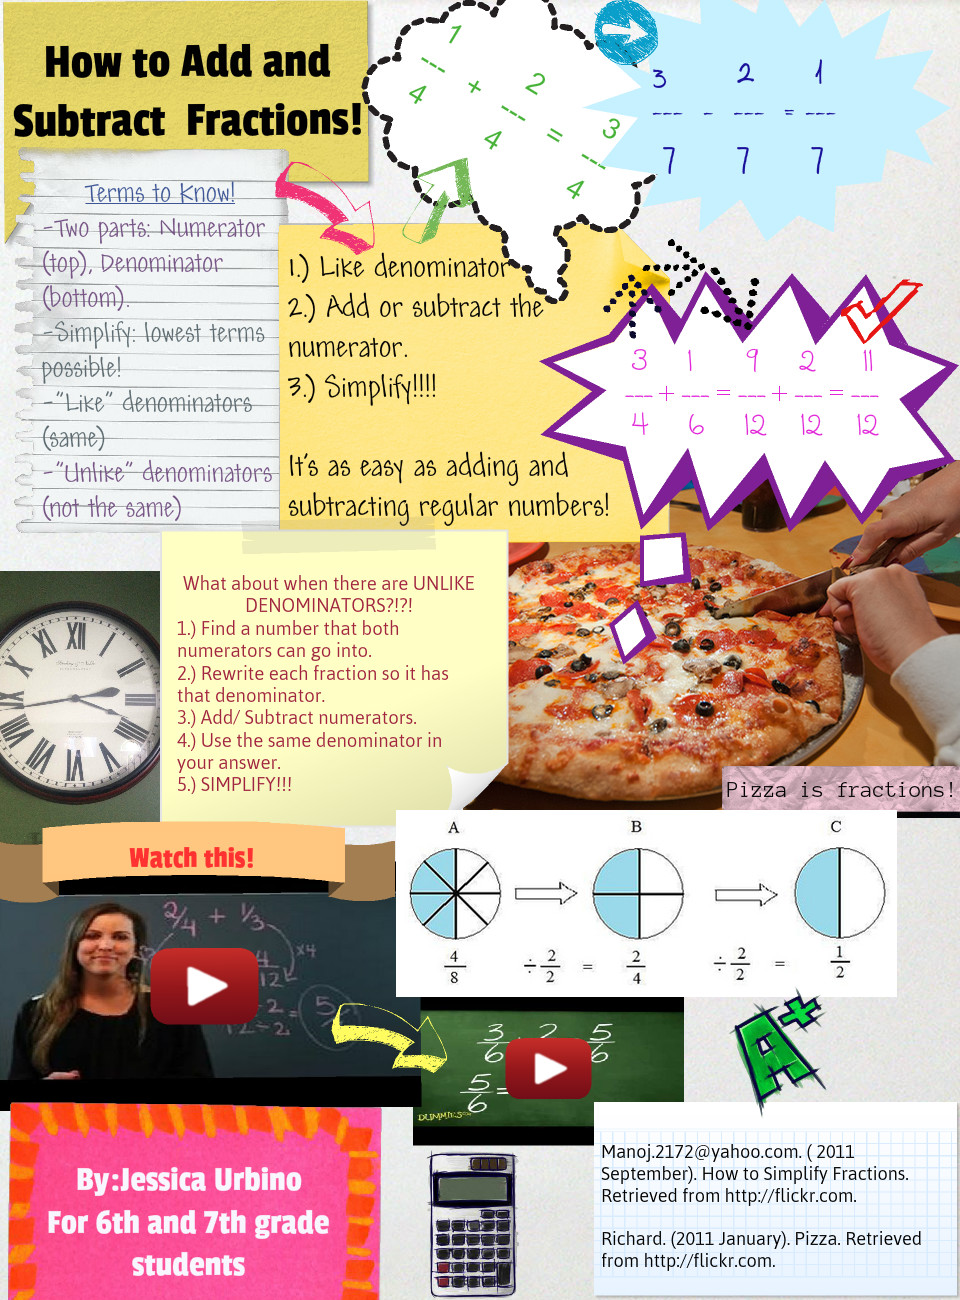 How to Add and Subtract Fractions!